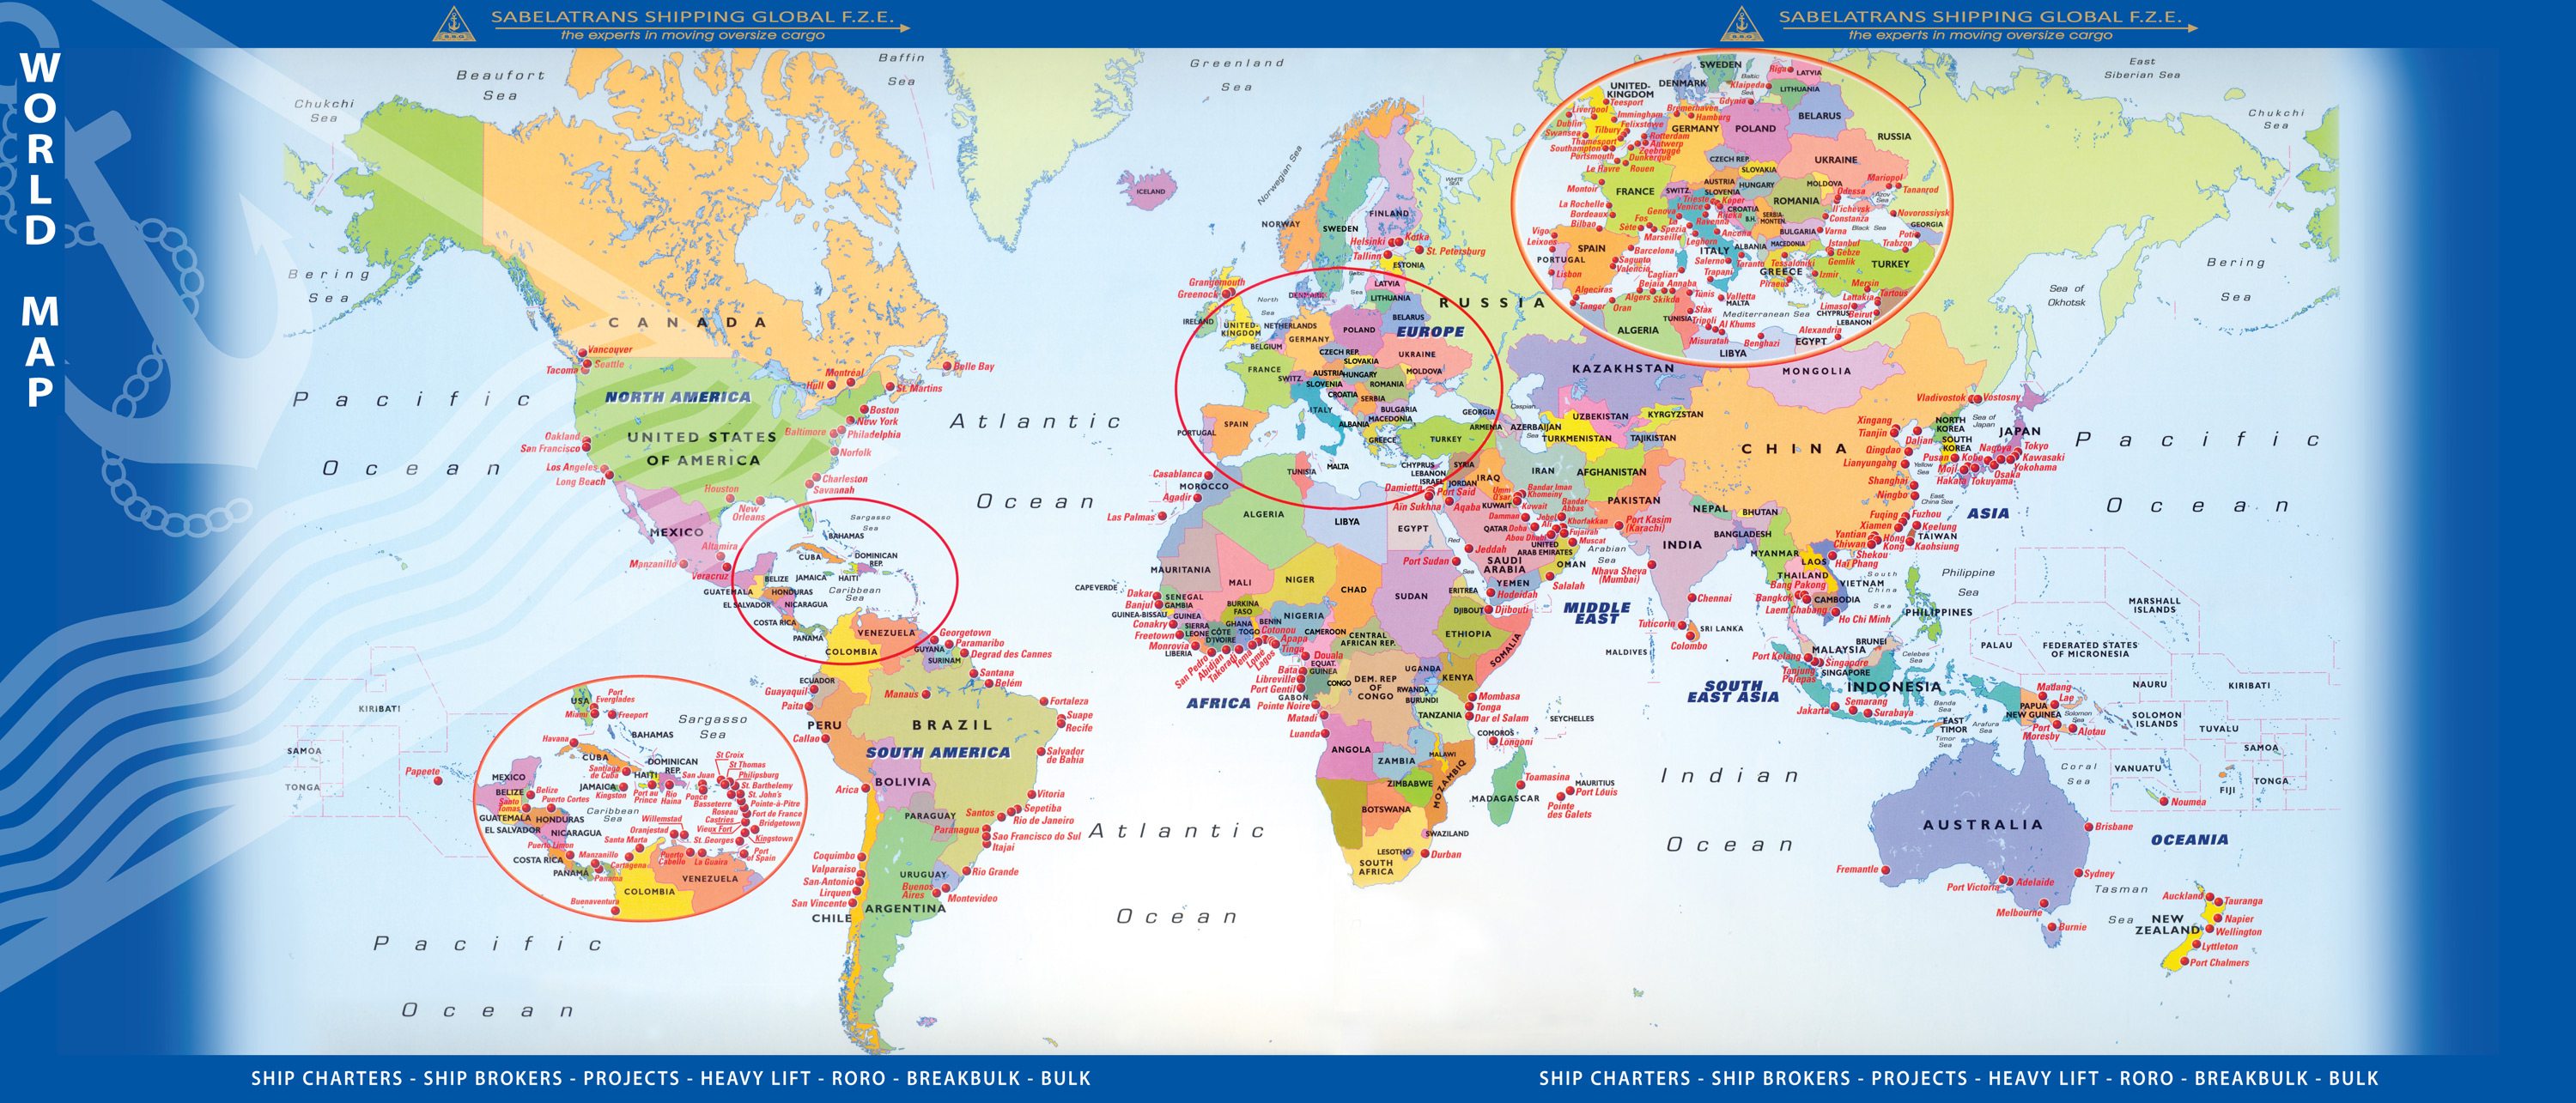 Welcome to sabelatrans shipping global fze world atlas map gumiabroncs Images